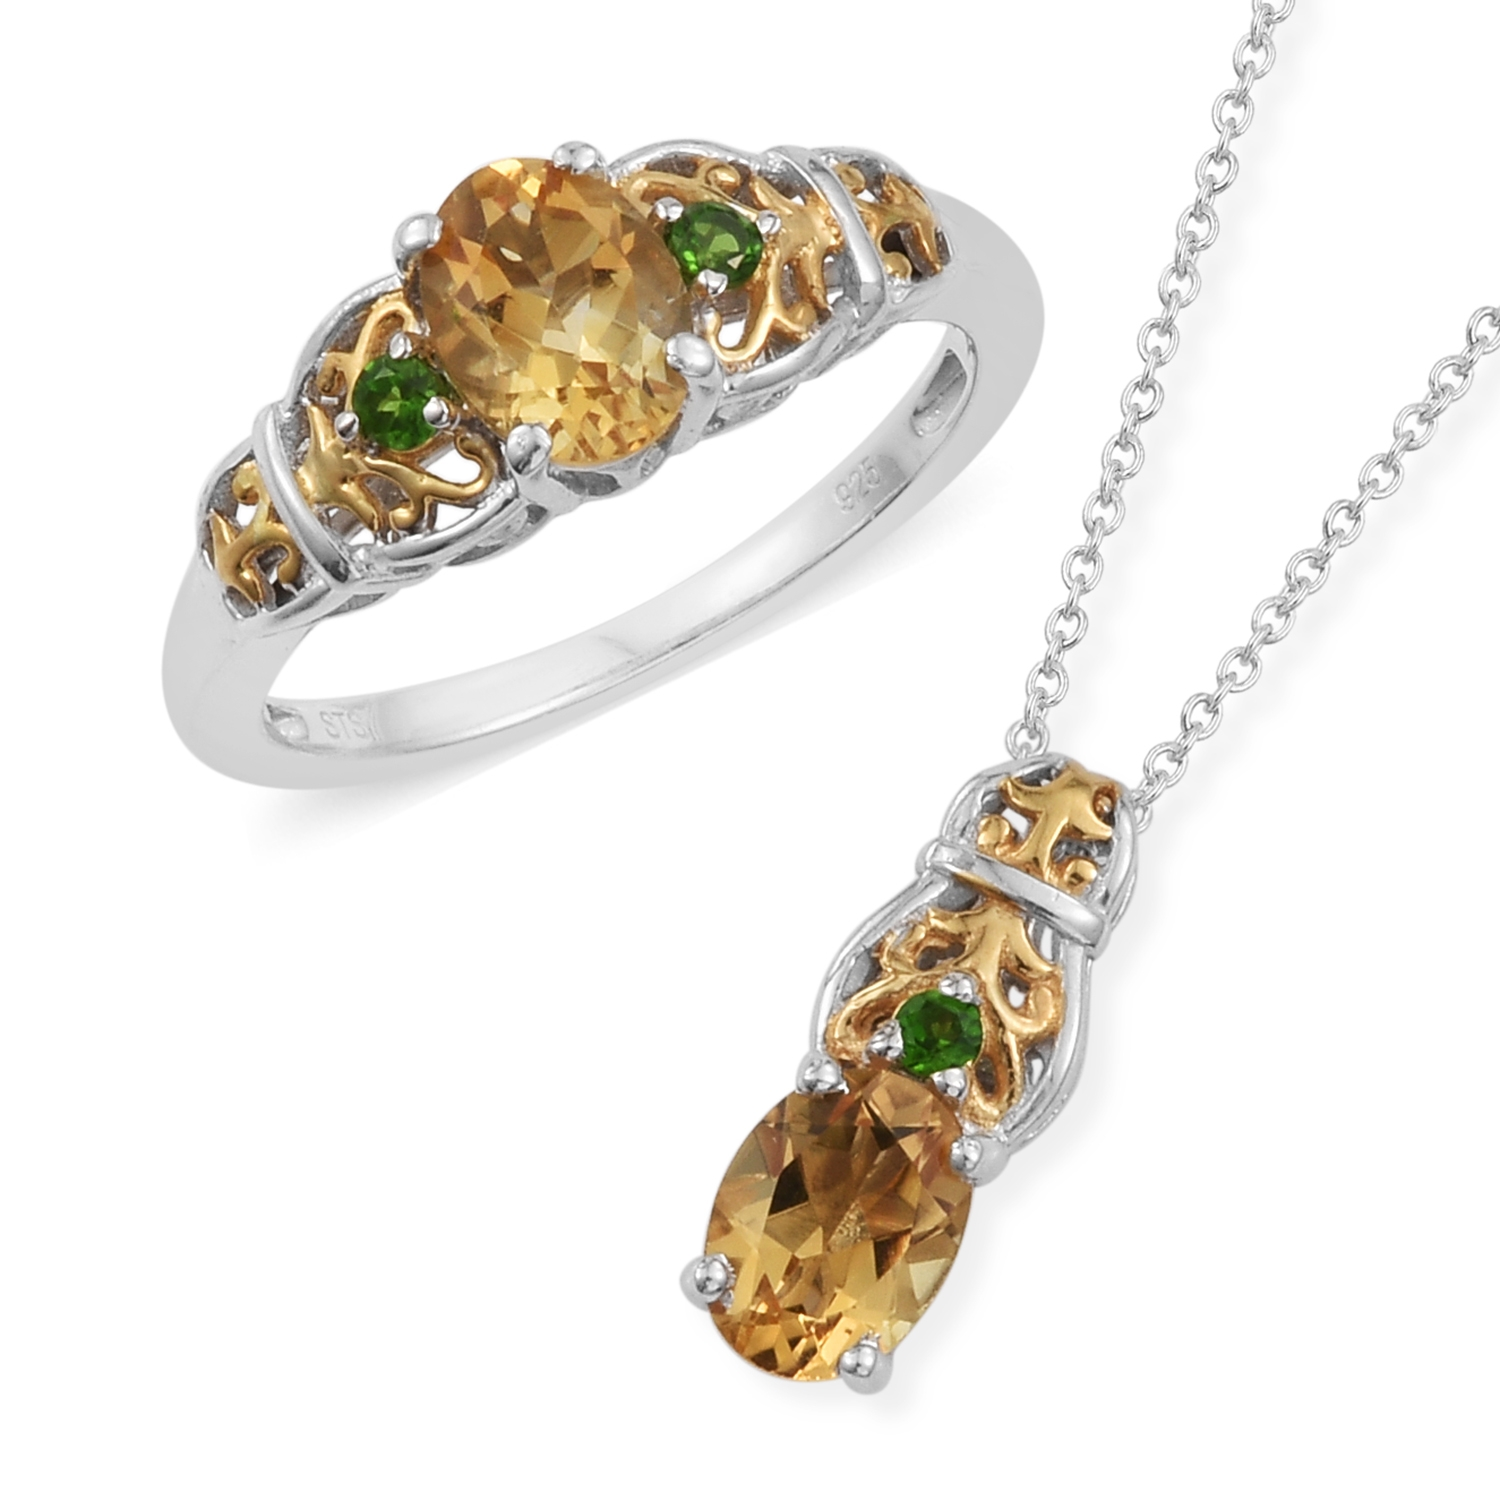 Brazilian Citrine, Russian Diopside 14K YG and Platinum Over Sterling Silver Ring (Size 8) and Pendant With Chain (20 in) TGW 2.60 cts.